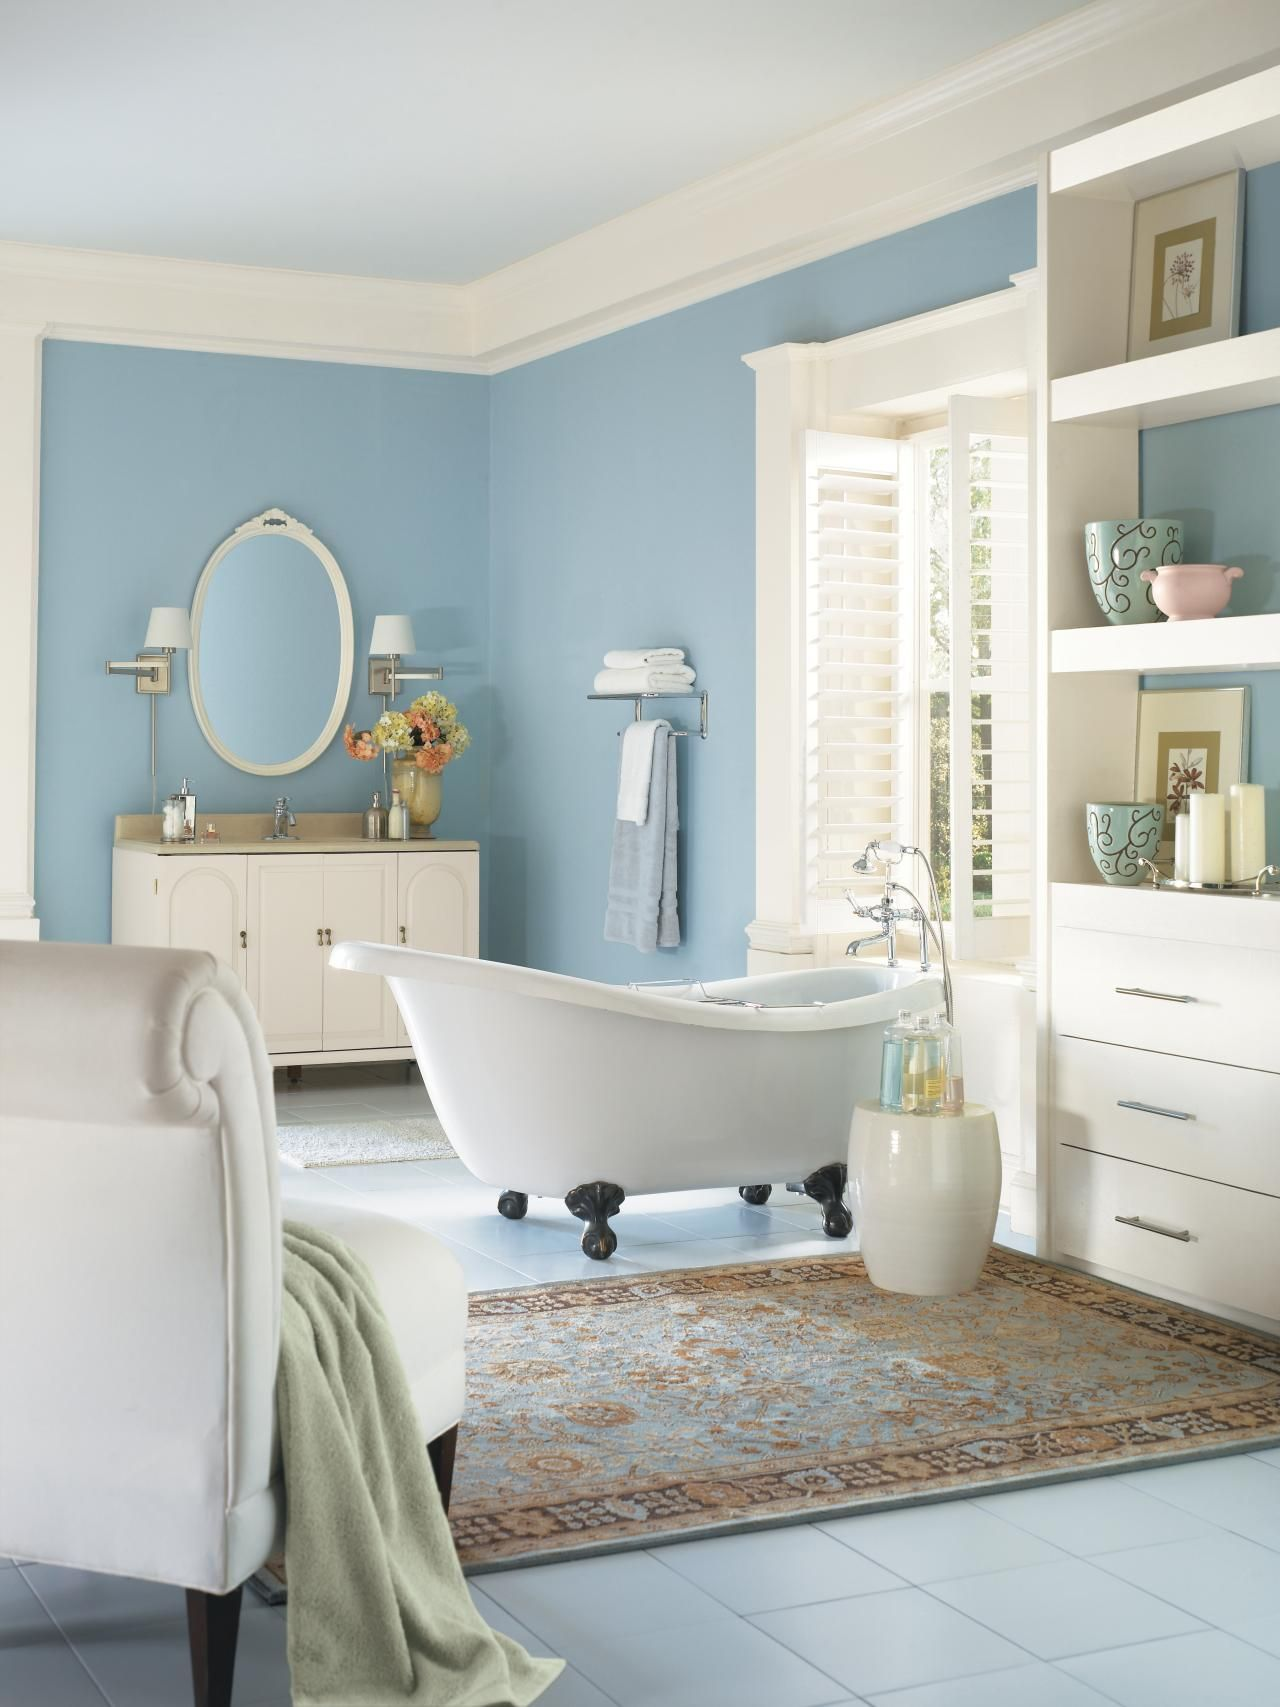 Color Theory 101: Analogous, Complementary and the 60-30-10 Rule | Interior Design Styles and Color Schemes for Home Decorating | HGTV